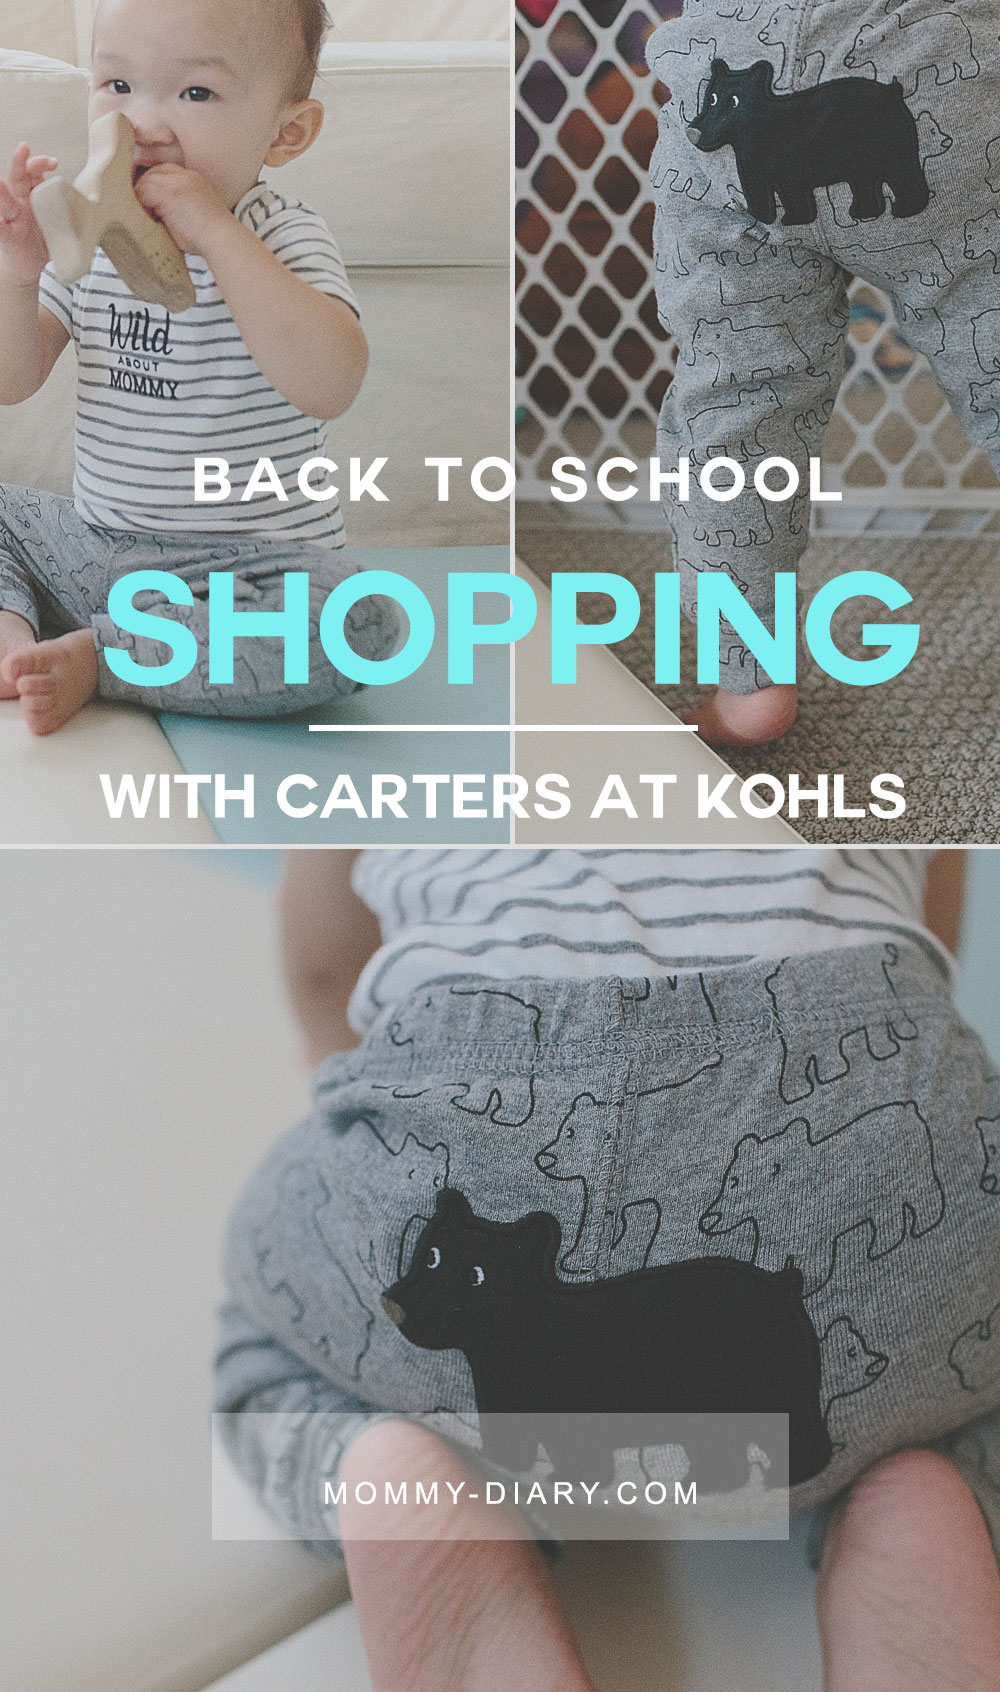 carters-kohls-back-to-school